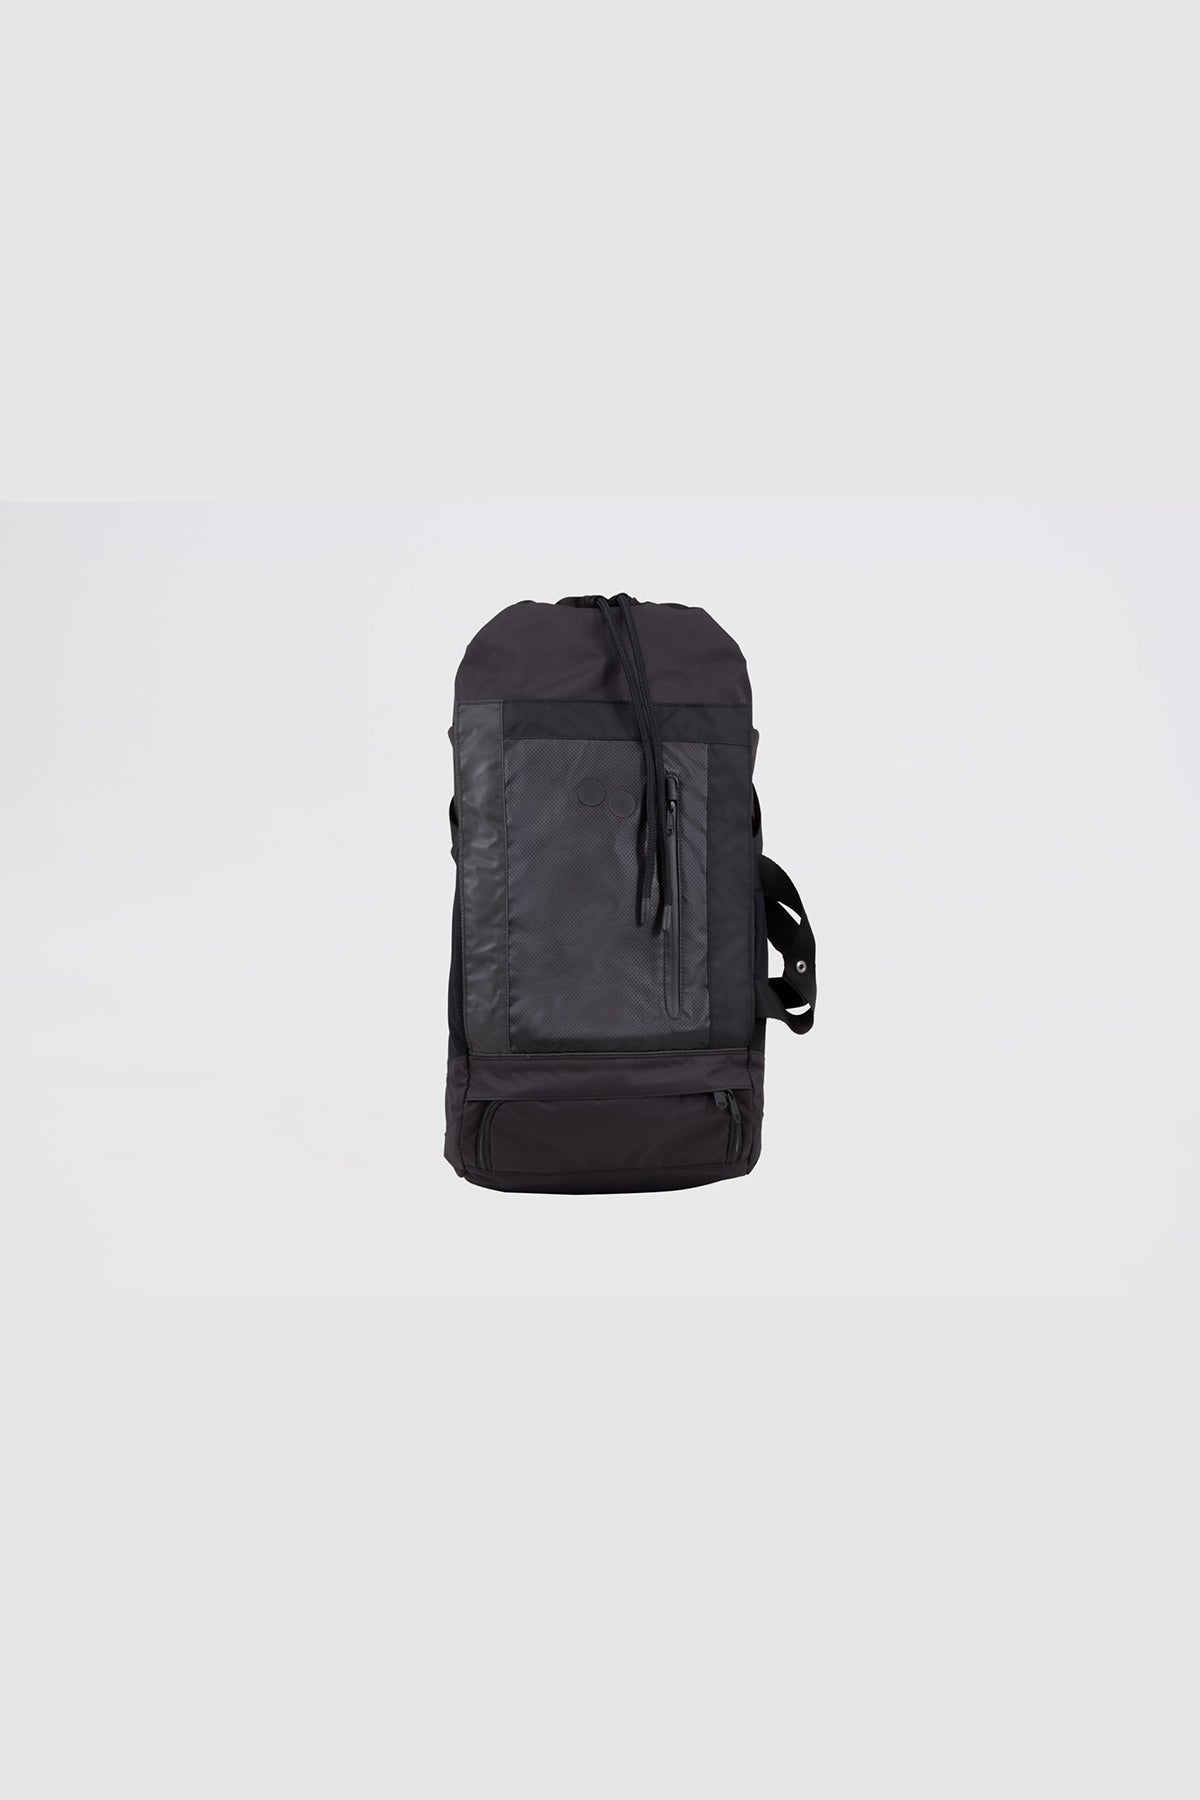 Pinqpong - Backpack Blok Medium (Tape Black) PPC-BLM-002-801B